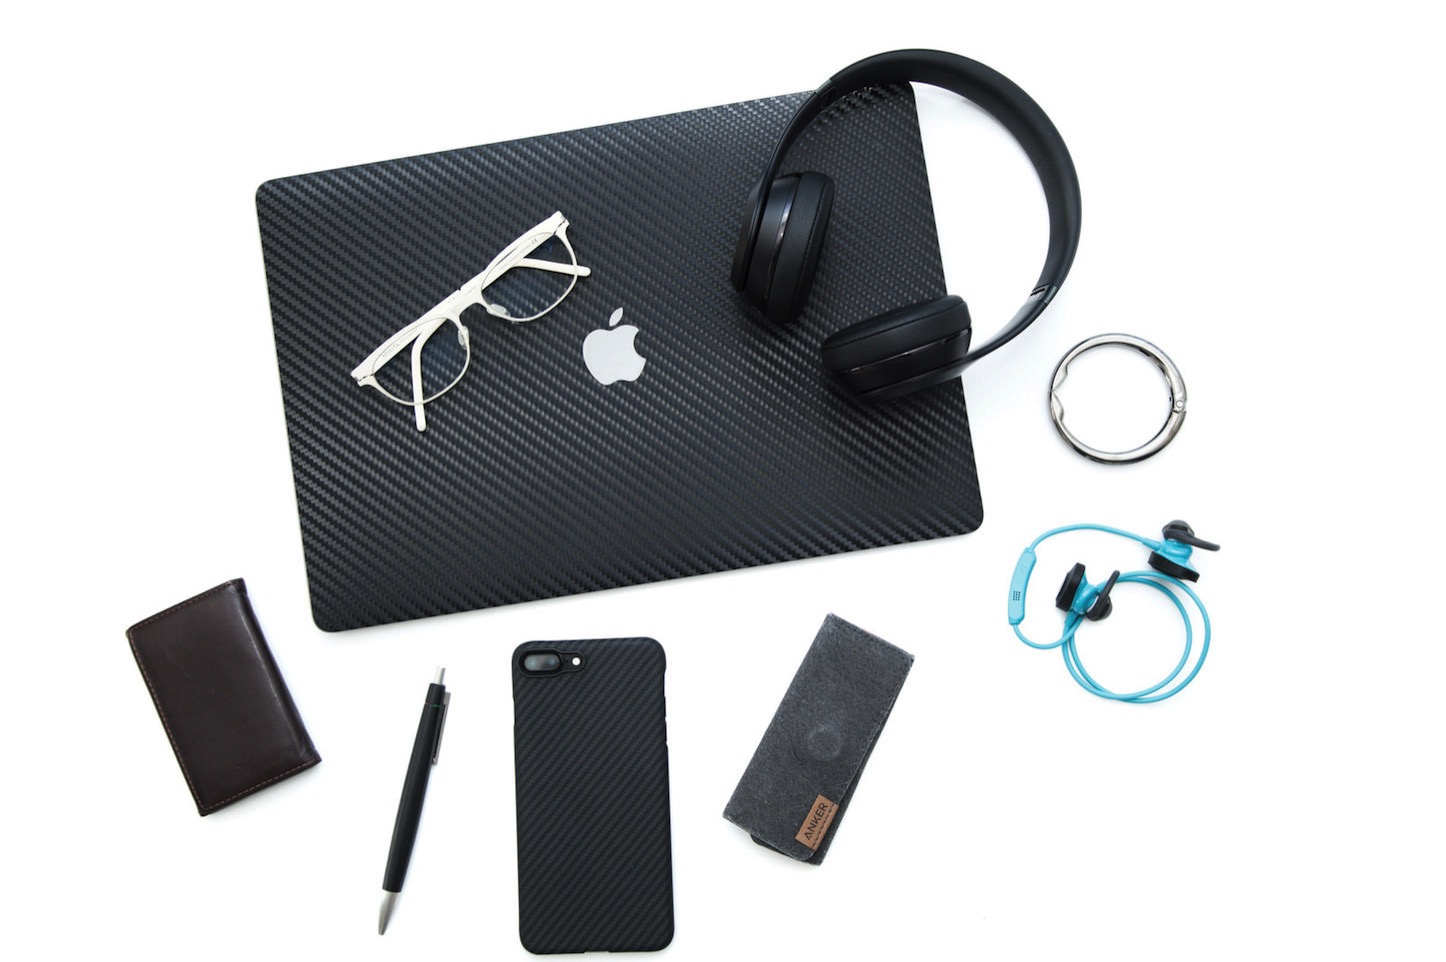 Gadgets for pro blogger